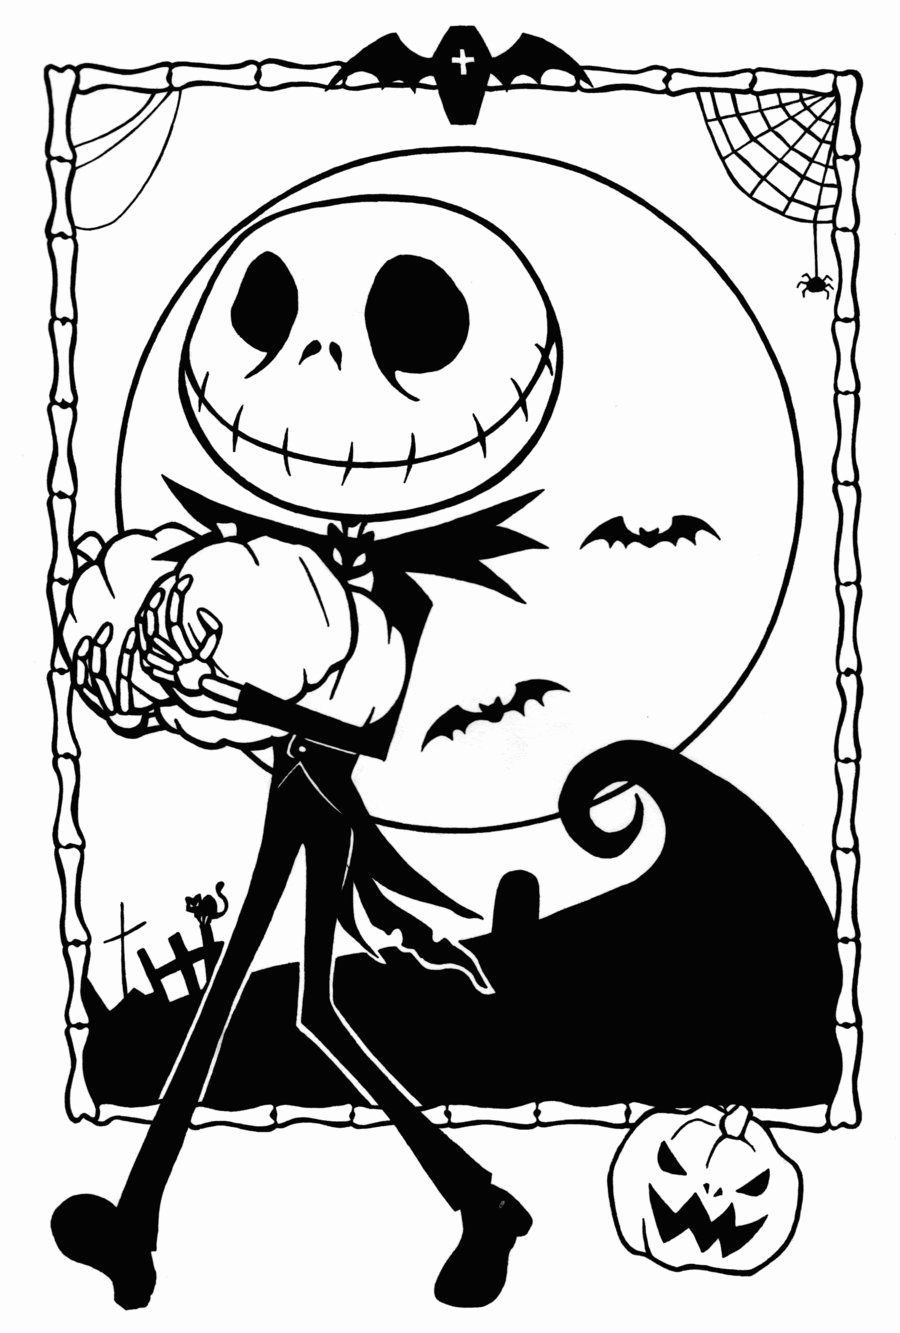 Jack Skellington Coloring Page Unique Free Printable Nightmare